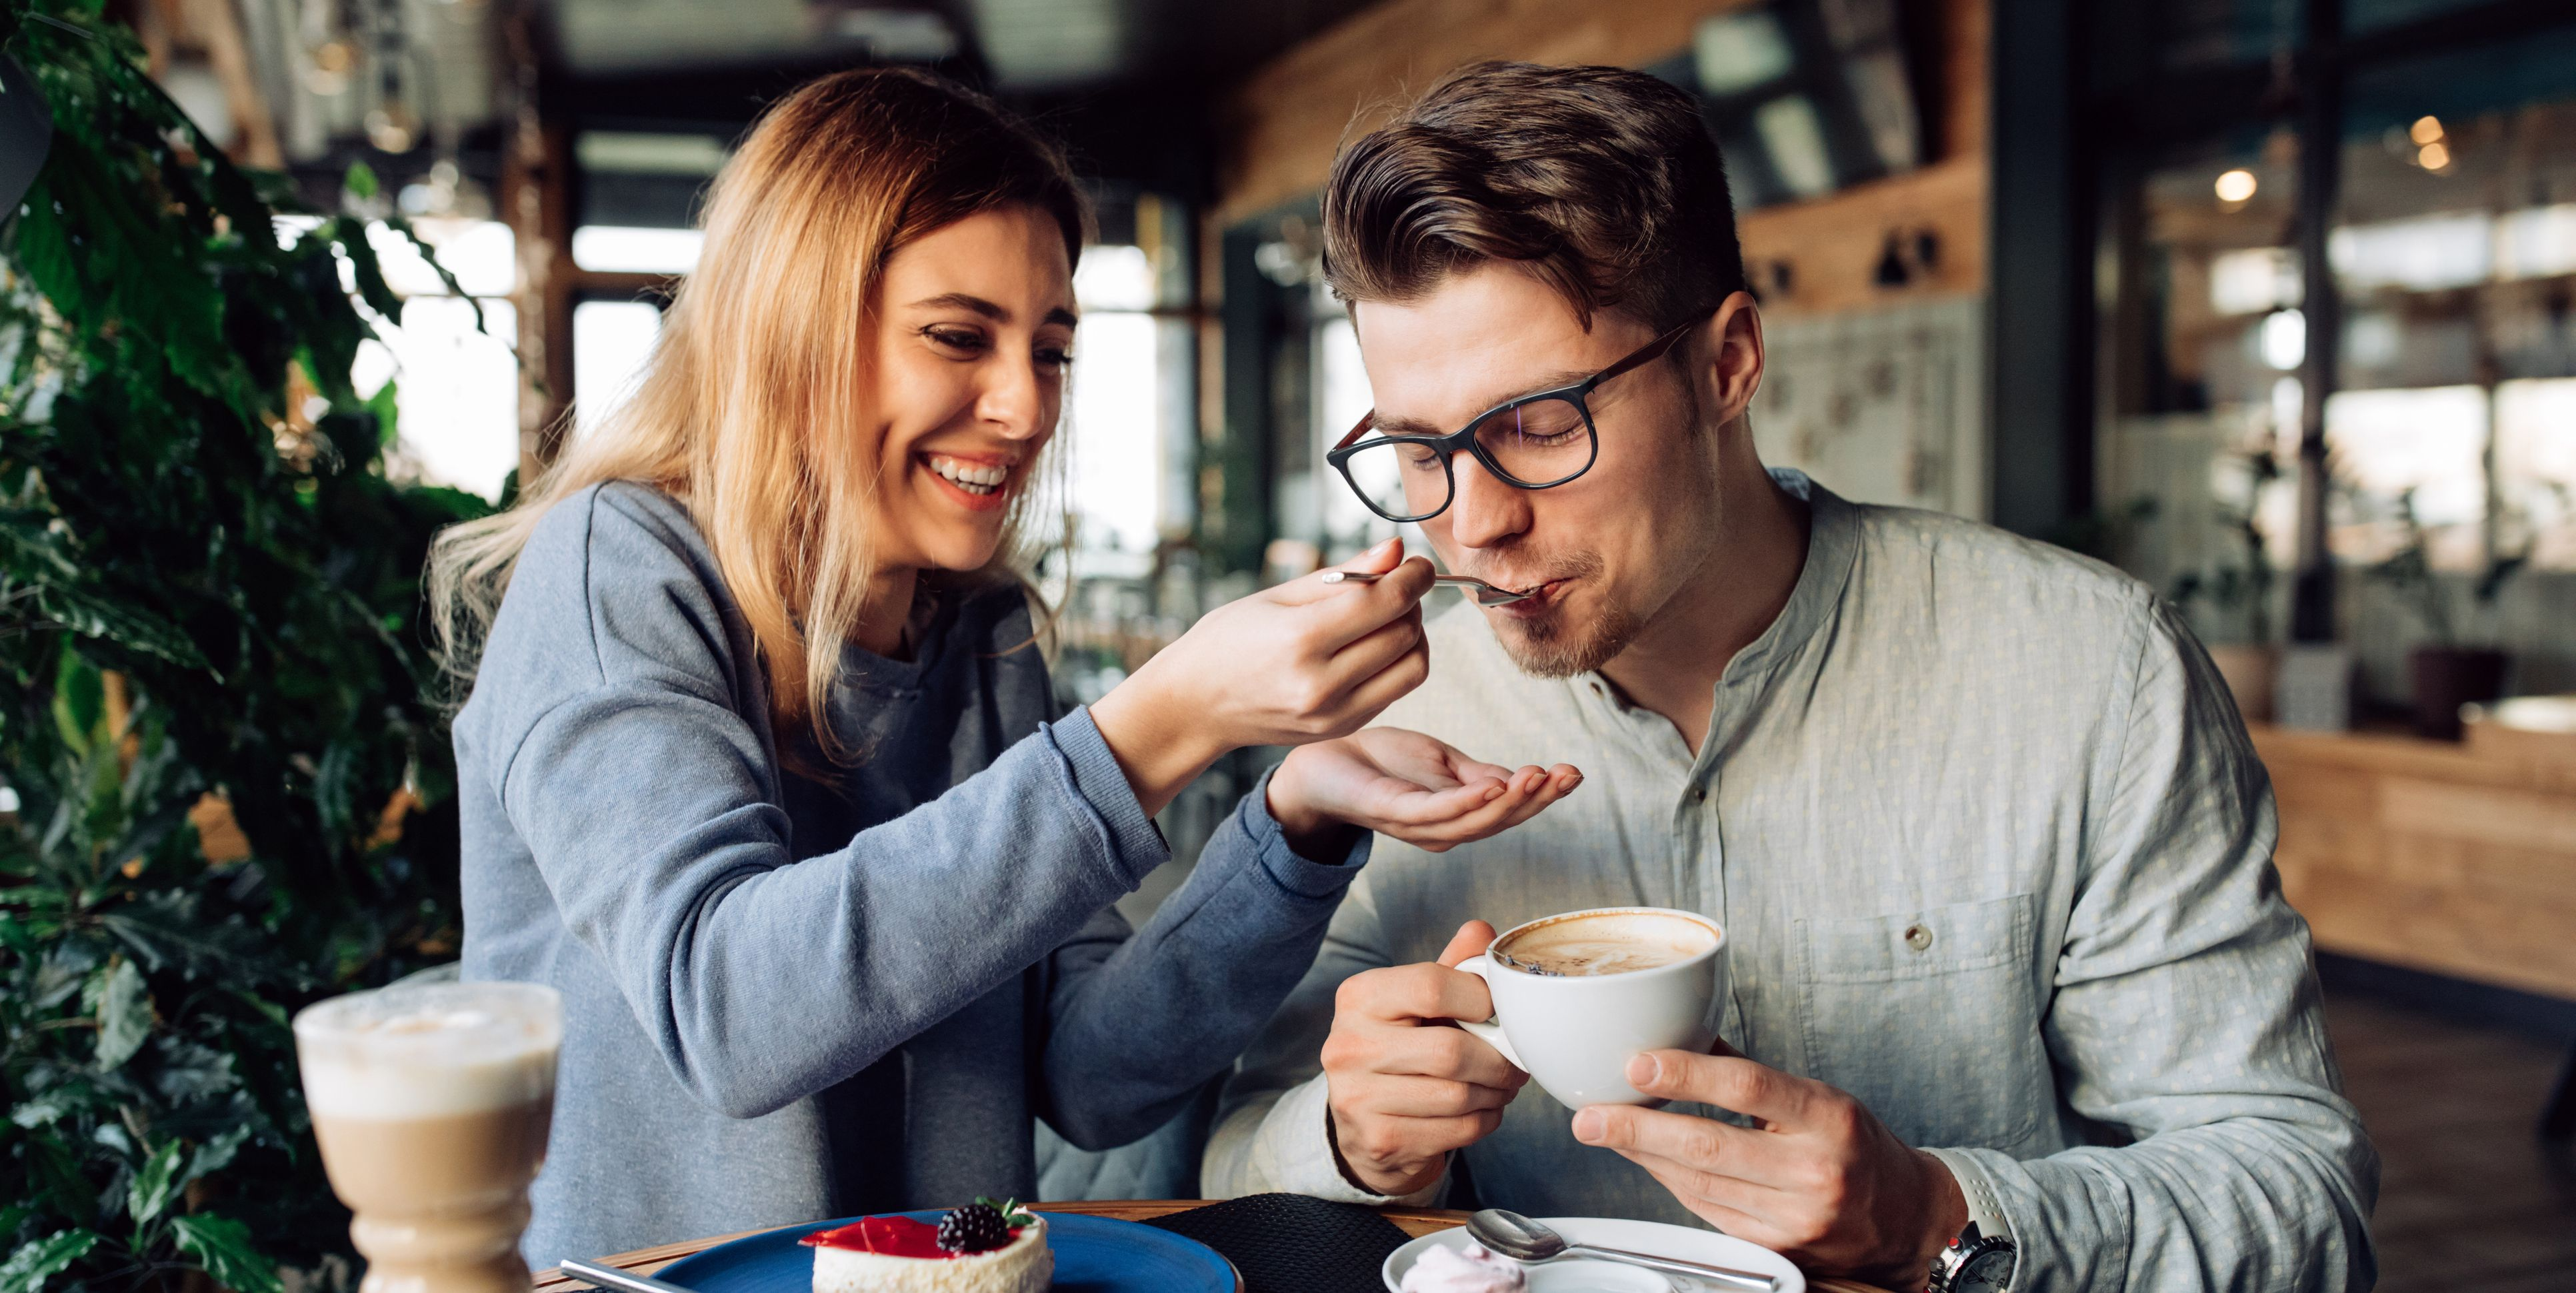 Cheerful girl feeding her boyfriend, while resting at cafe